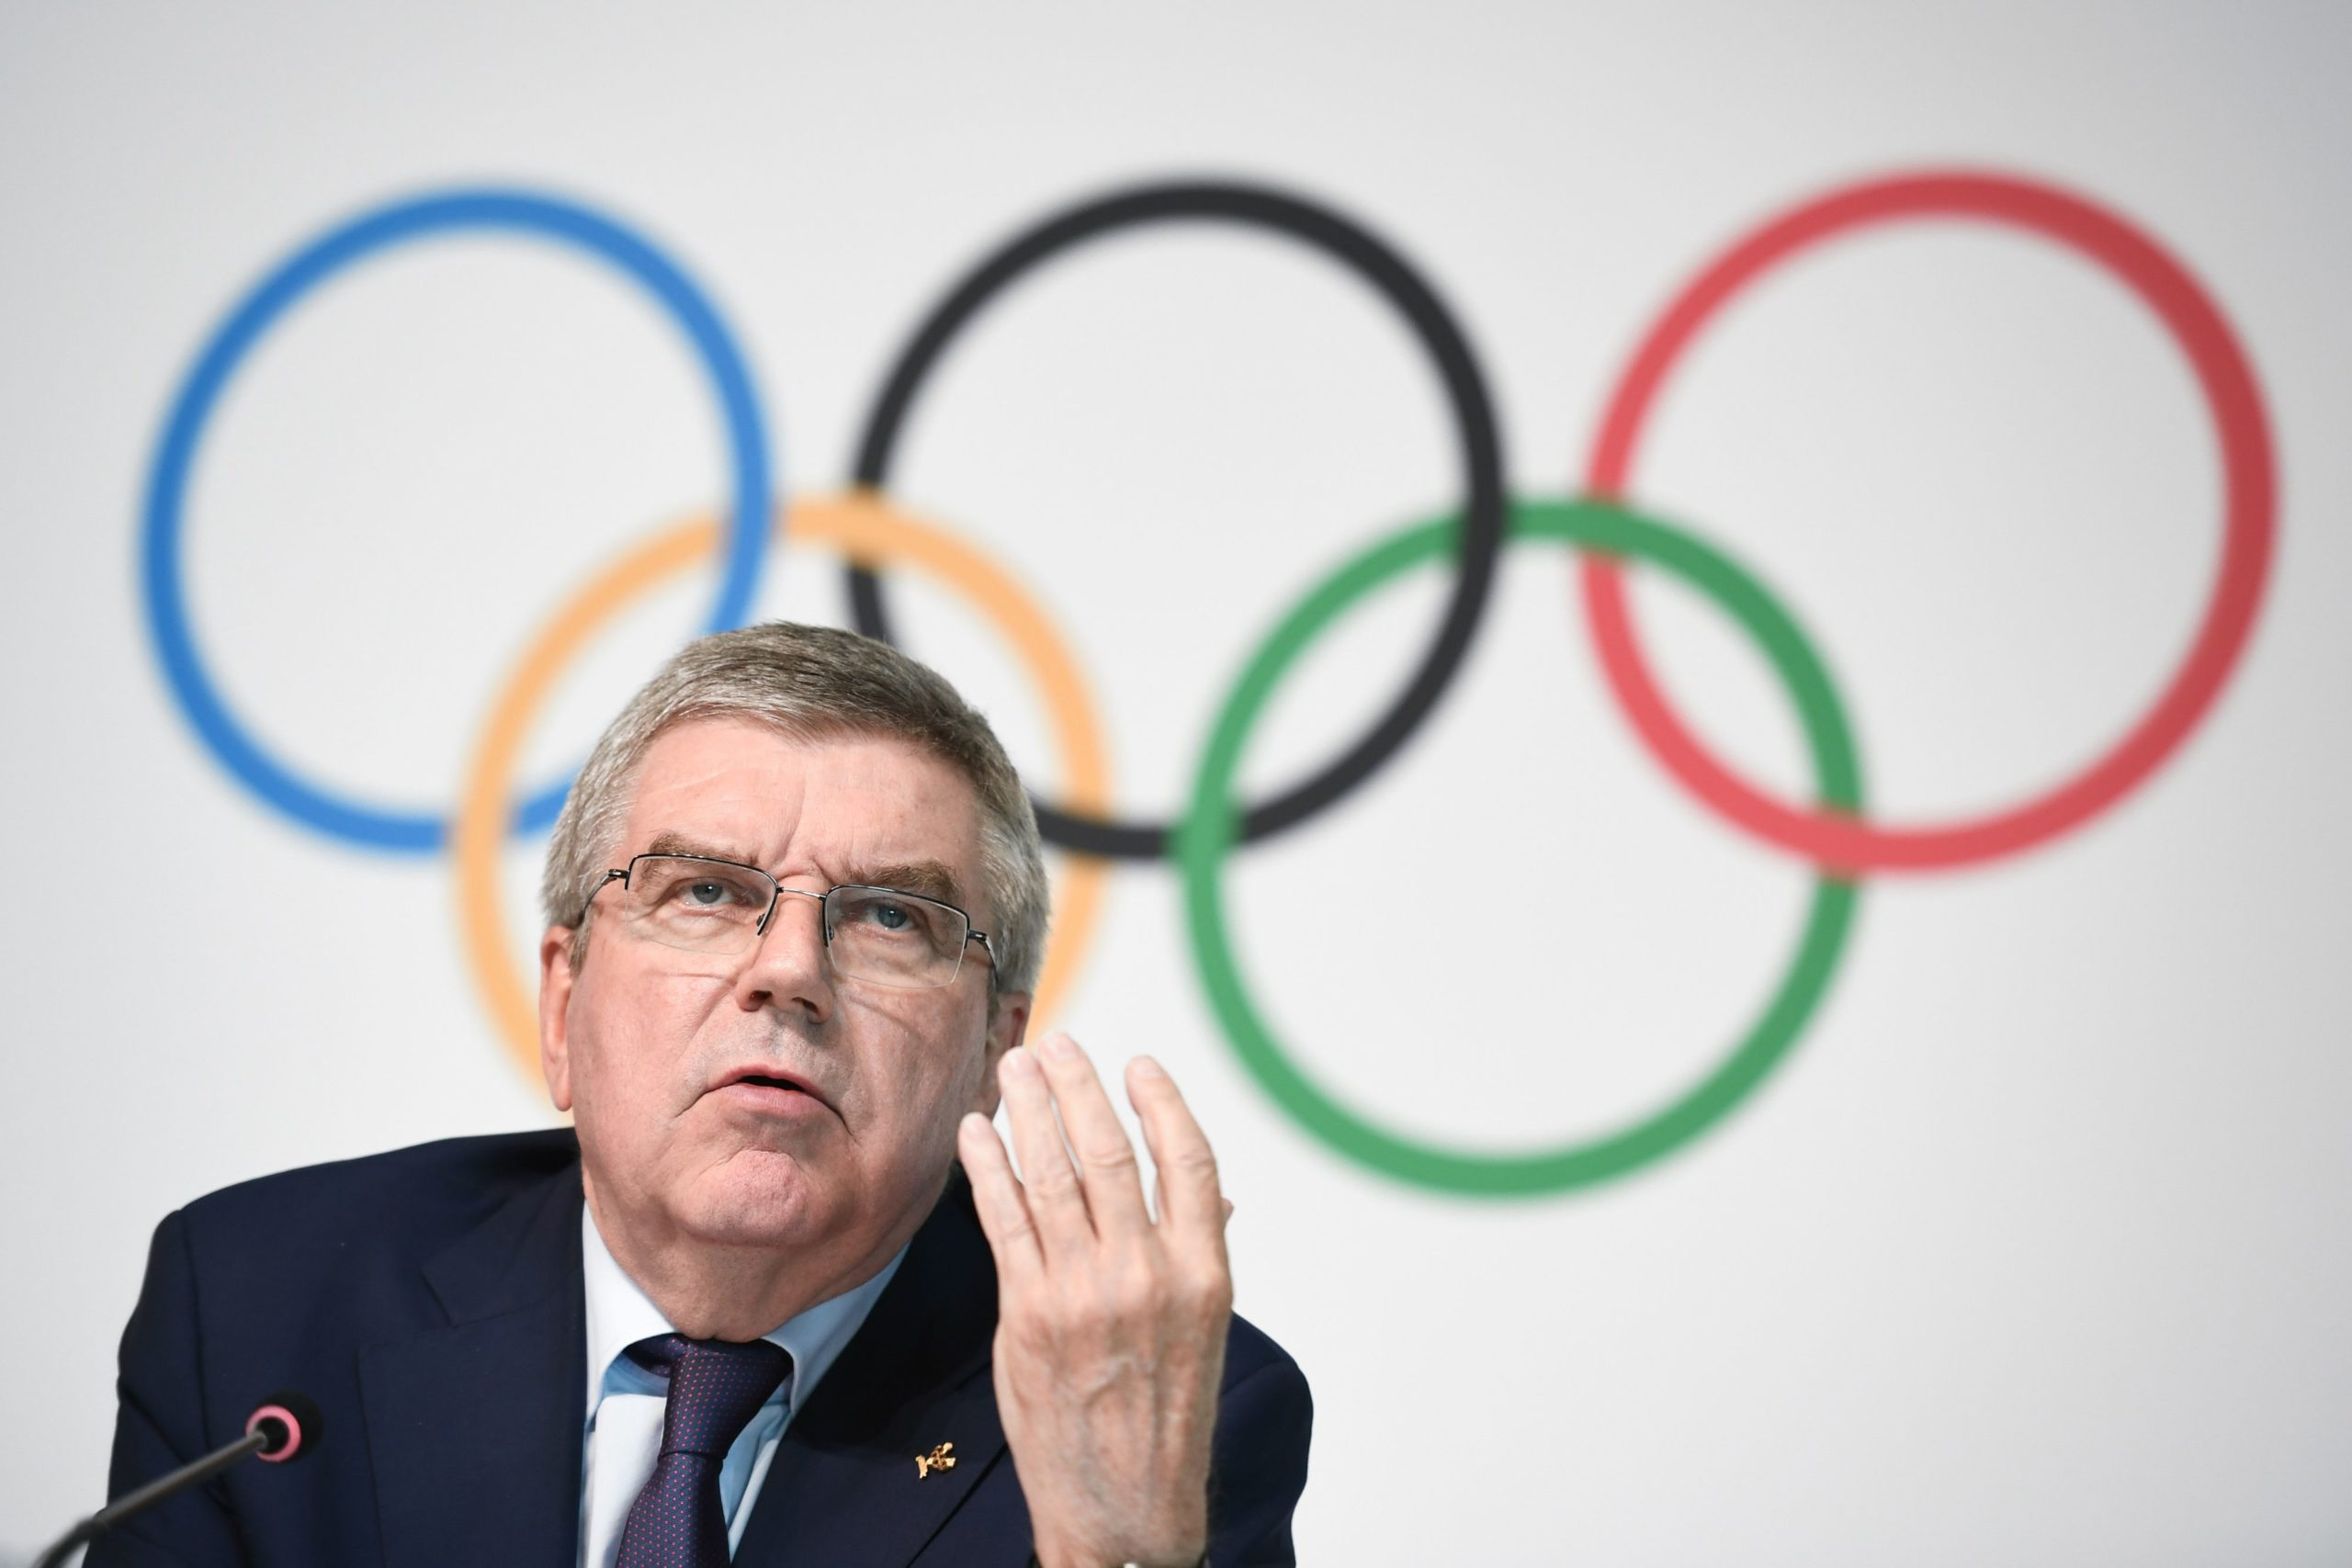 International Olympic Committee (IOC) president Thomas Bach gestures as he speaks during a press conference following an IOC executive committee on boxing at the 2020 Olympic Games at the sports governing body's headquarters on May 22, 2019 in Lausanne. (Photo credit: FABRICE COFFRINI/AFP via Getty Images)